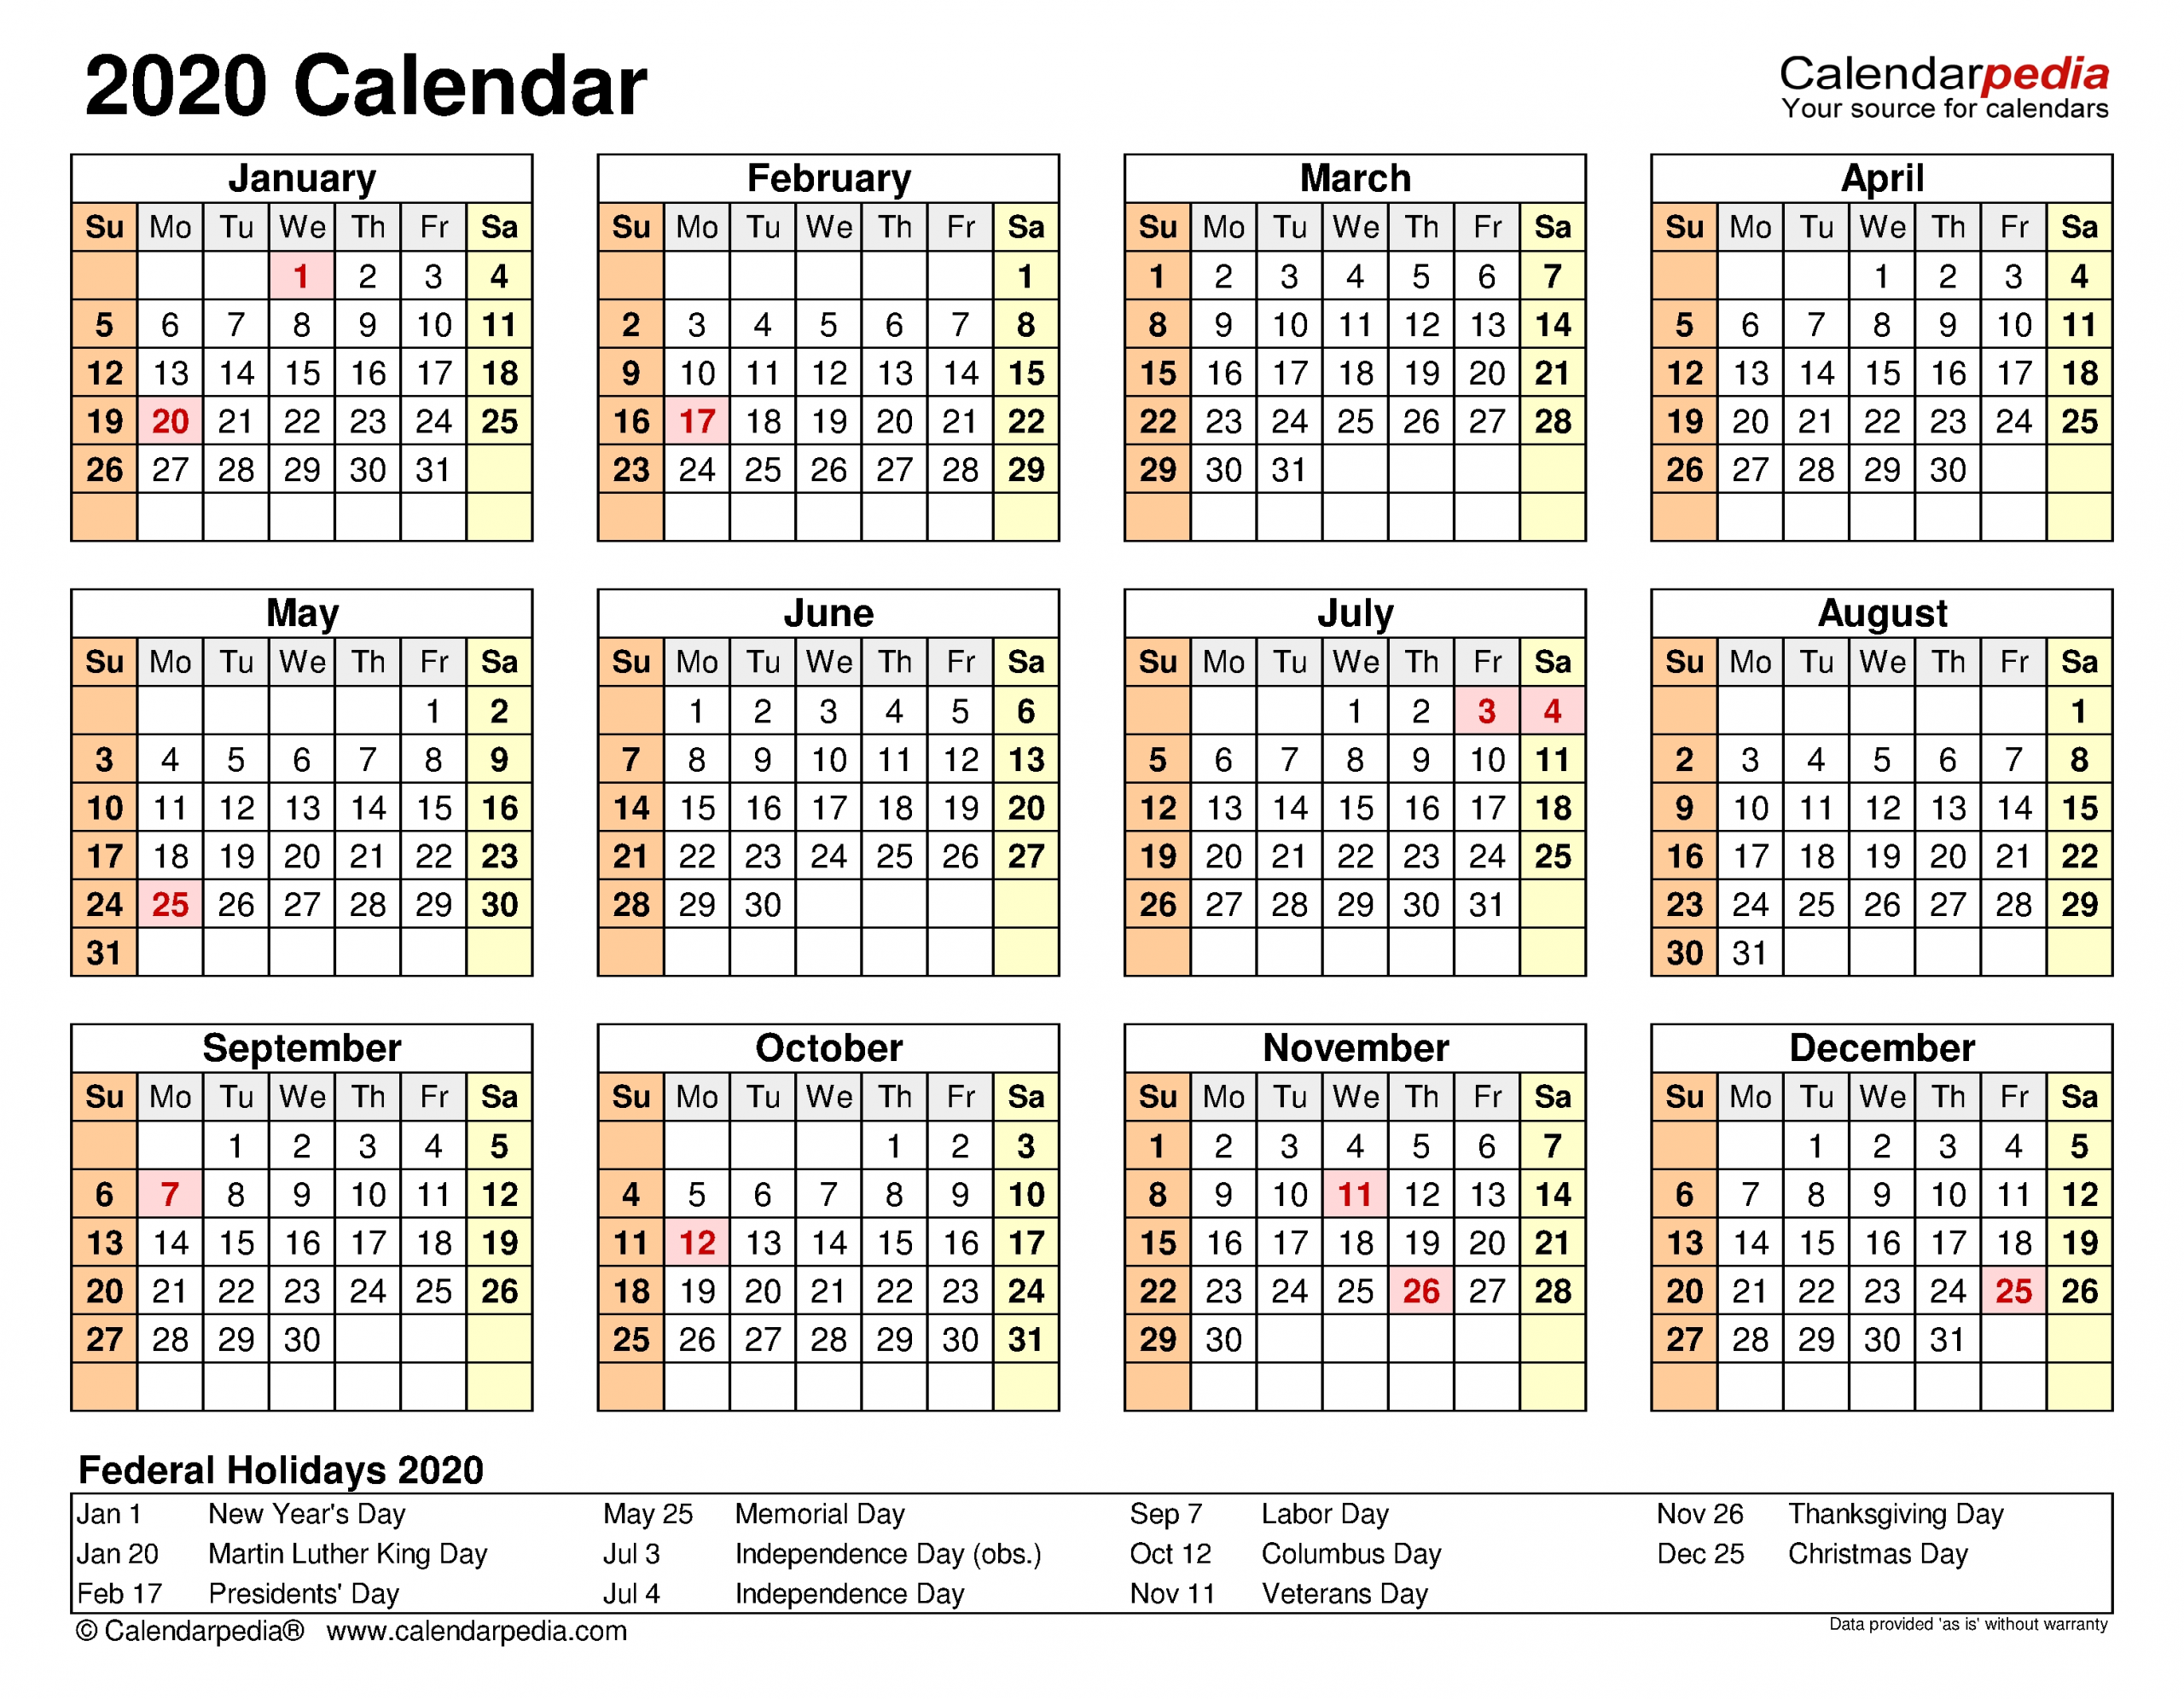 2020 Calendar - Free Printable Word Templates - Calendarpedia intended for 2020 Calendar Landscape Year At A Glance